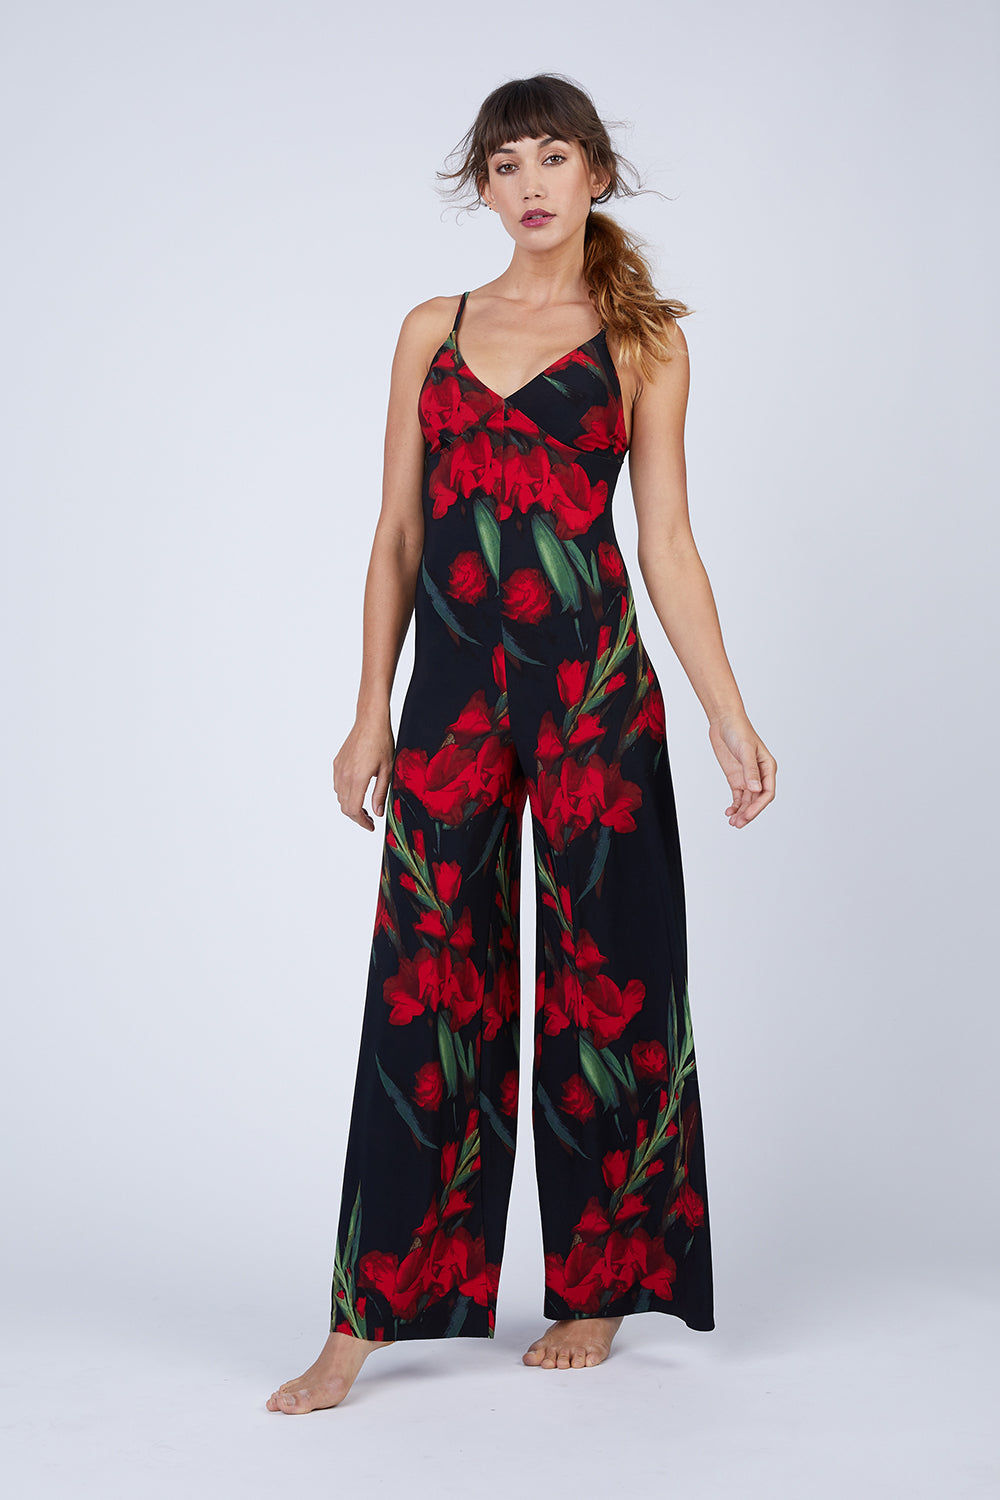 NORMA KAMALI Slip Jumpsuit - Blooming Roses Print Jumpsuit | Blooming Roses Print| Norma Kamali Slip Jumpsuit - Blooming Roses Print  Flowy stretch jersey jumpsuit in red and black floral print. Thin slip straps and simple tank neckline frame the minimalistic cut. Long, wide-leg trouser-style pant lengthens your frame in an easy breezy look. Front View